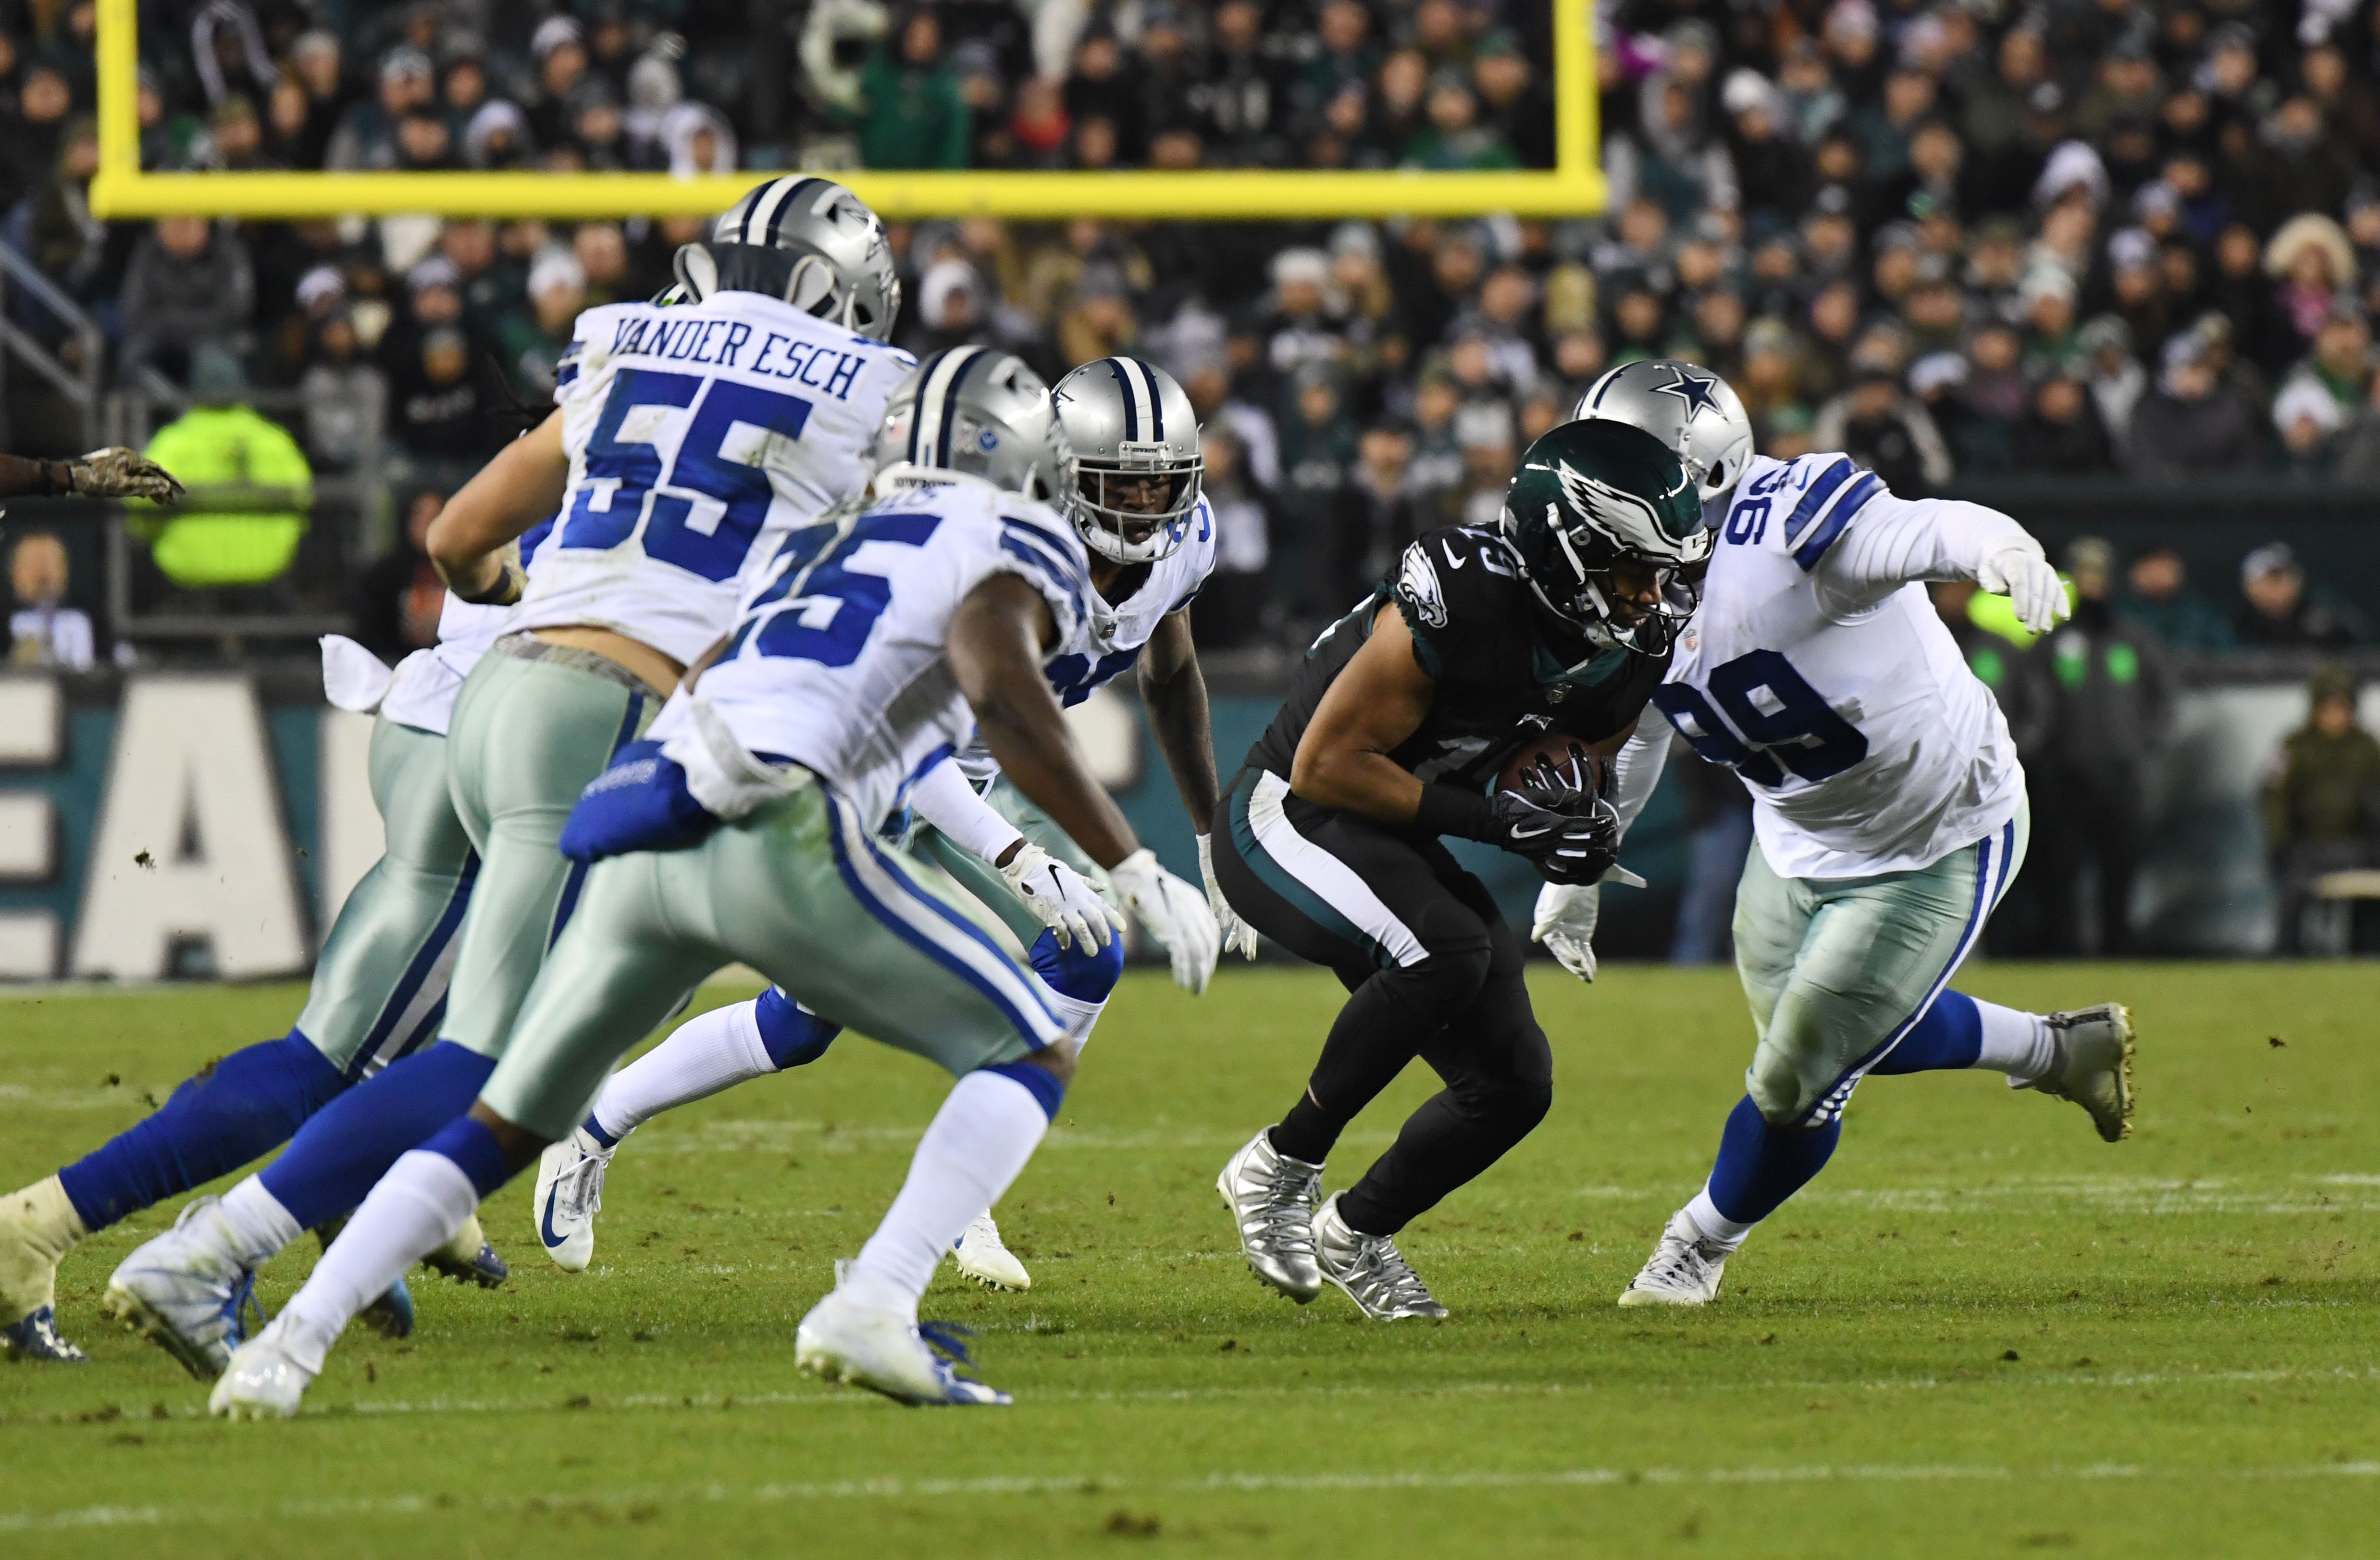 Nov 11, 2018; Philadelphia, PA, USA; Philadelphia Eagles wide receiver Golden Tate (19) is tackled by Dallas Cowboys defensive tackle Antwan Woods (99) in the fourth quarter at Lincoln Financial Field. Mandatory Credit: James Lang-USA TODAY Sports